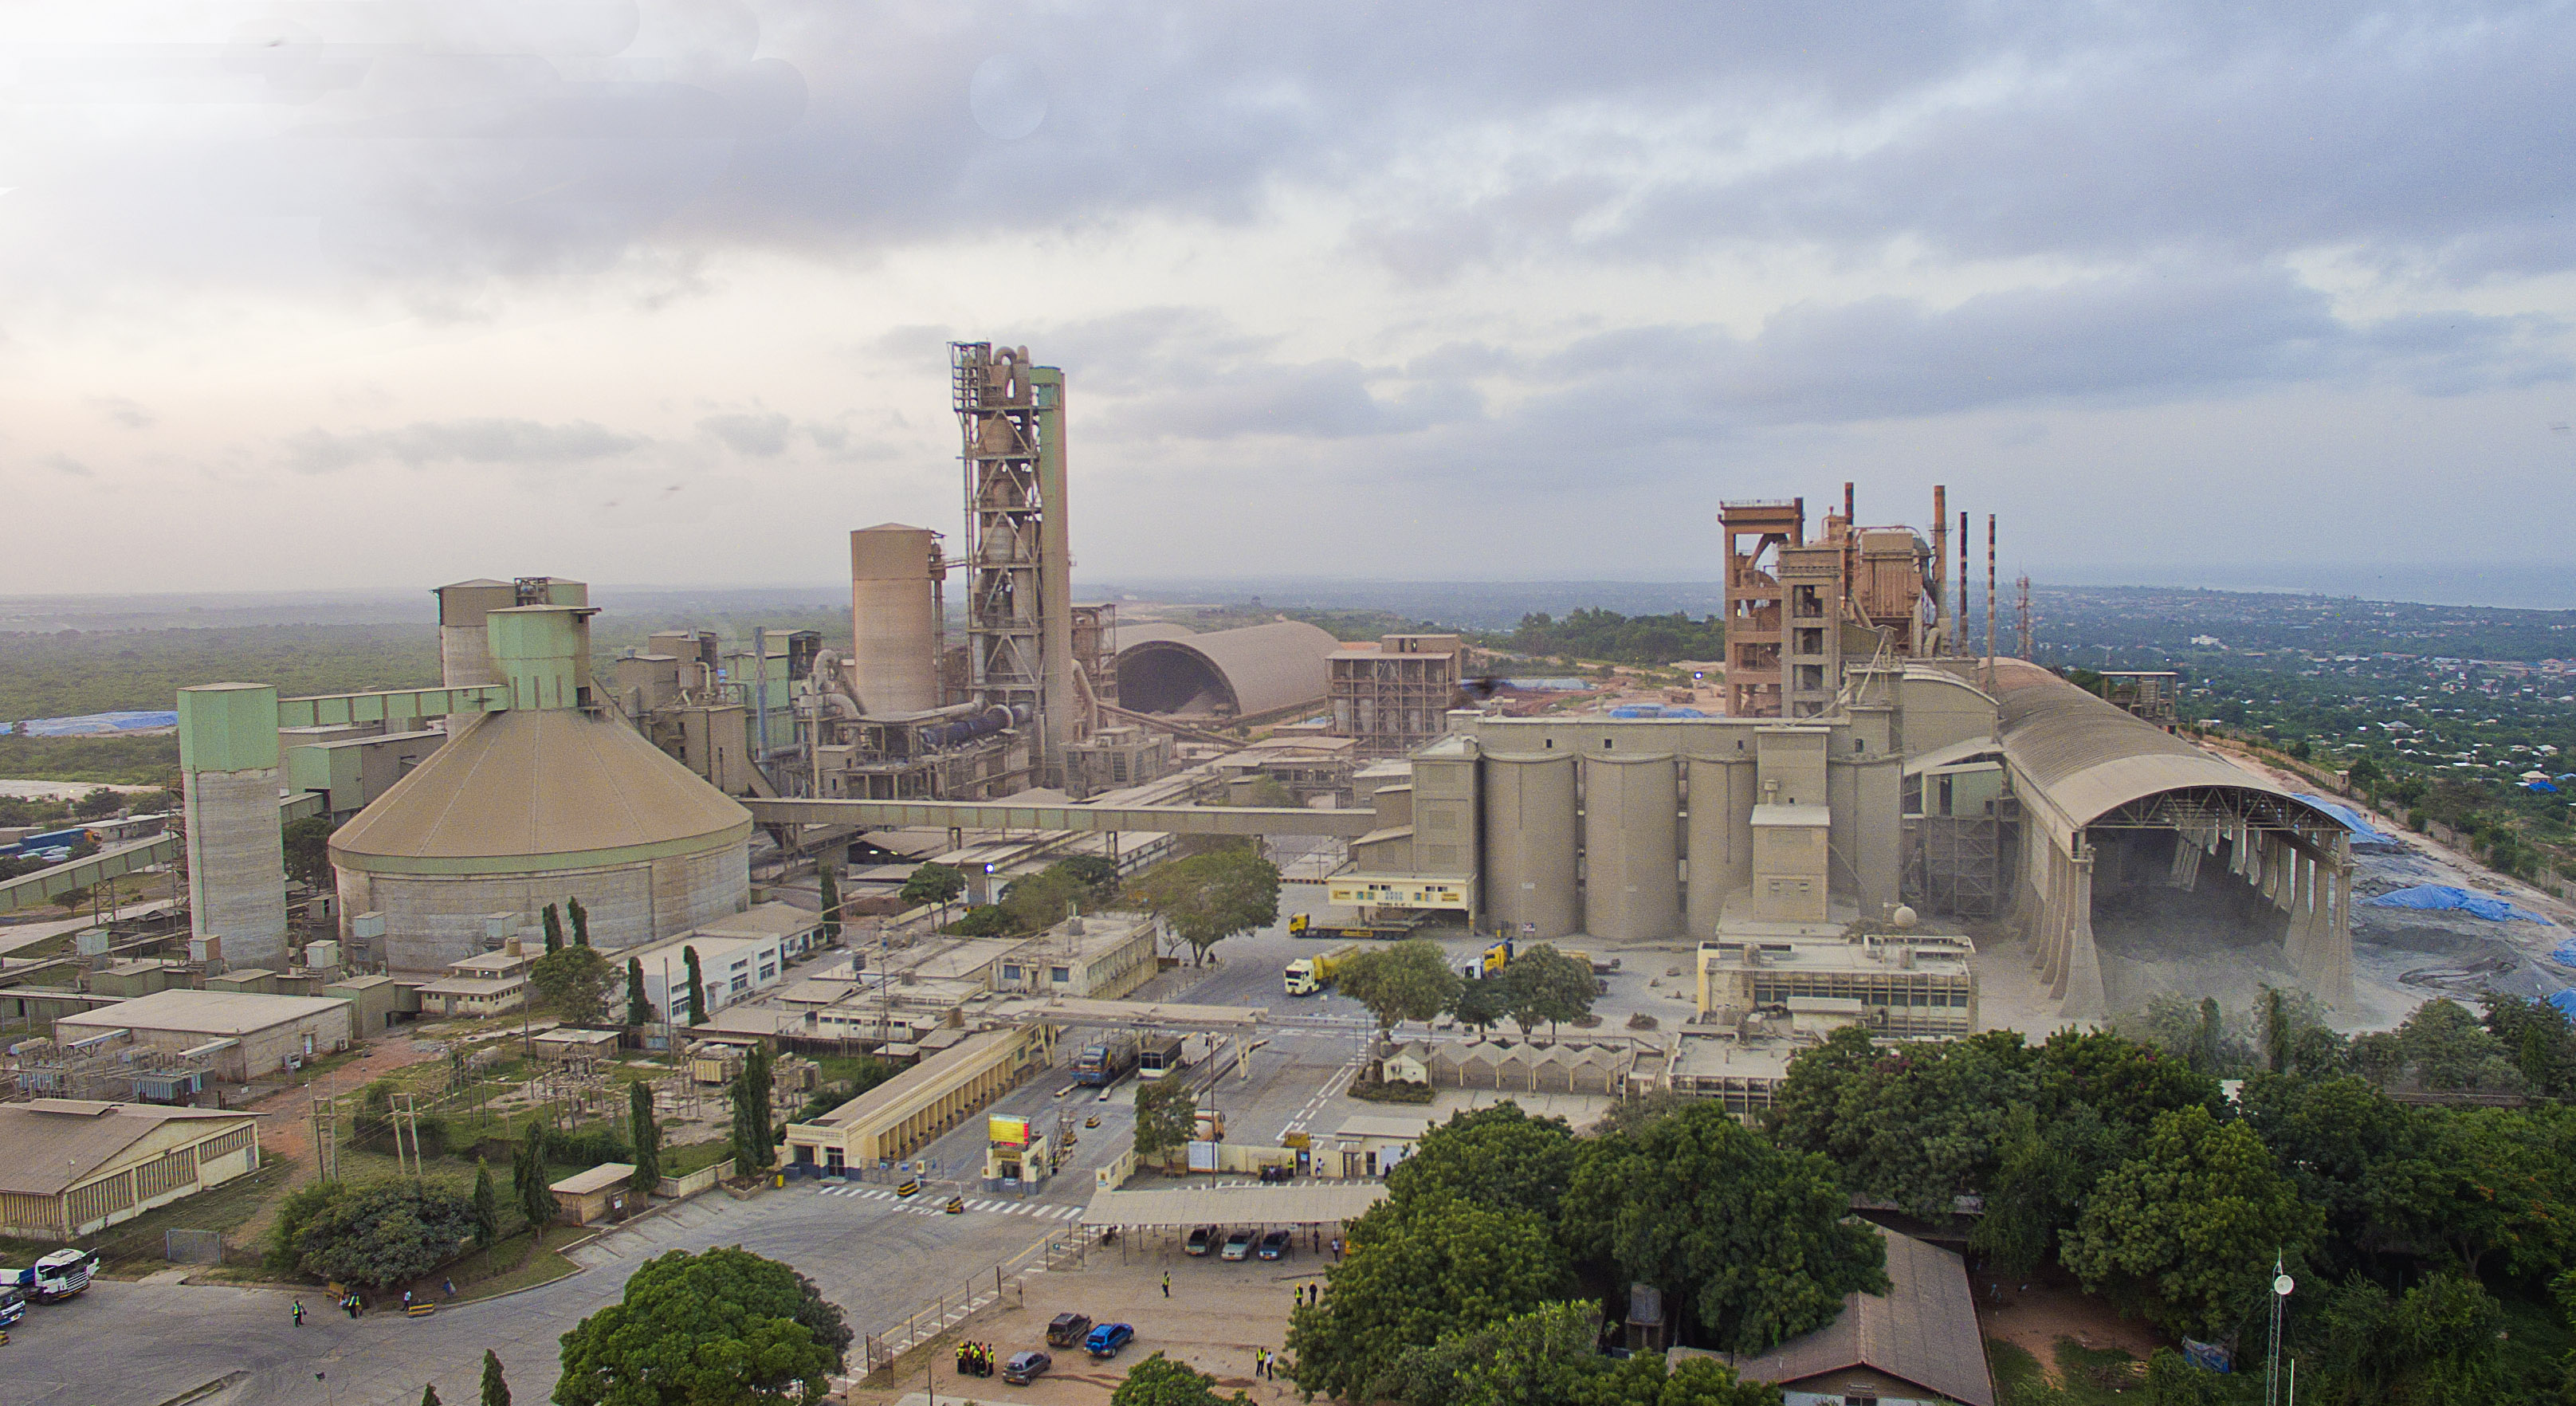 Wholesale Suppliers In Tanzania Welcome To Tanzania Portland Cement Public Limited Company